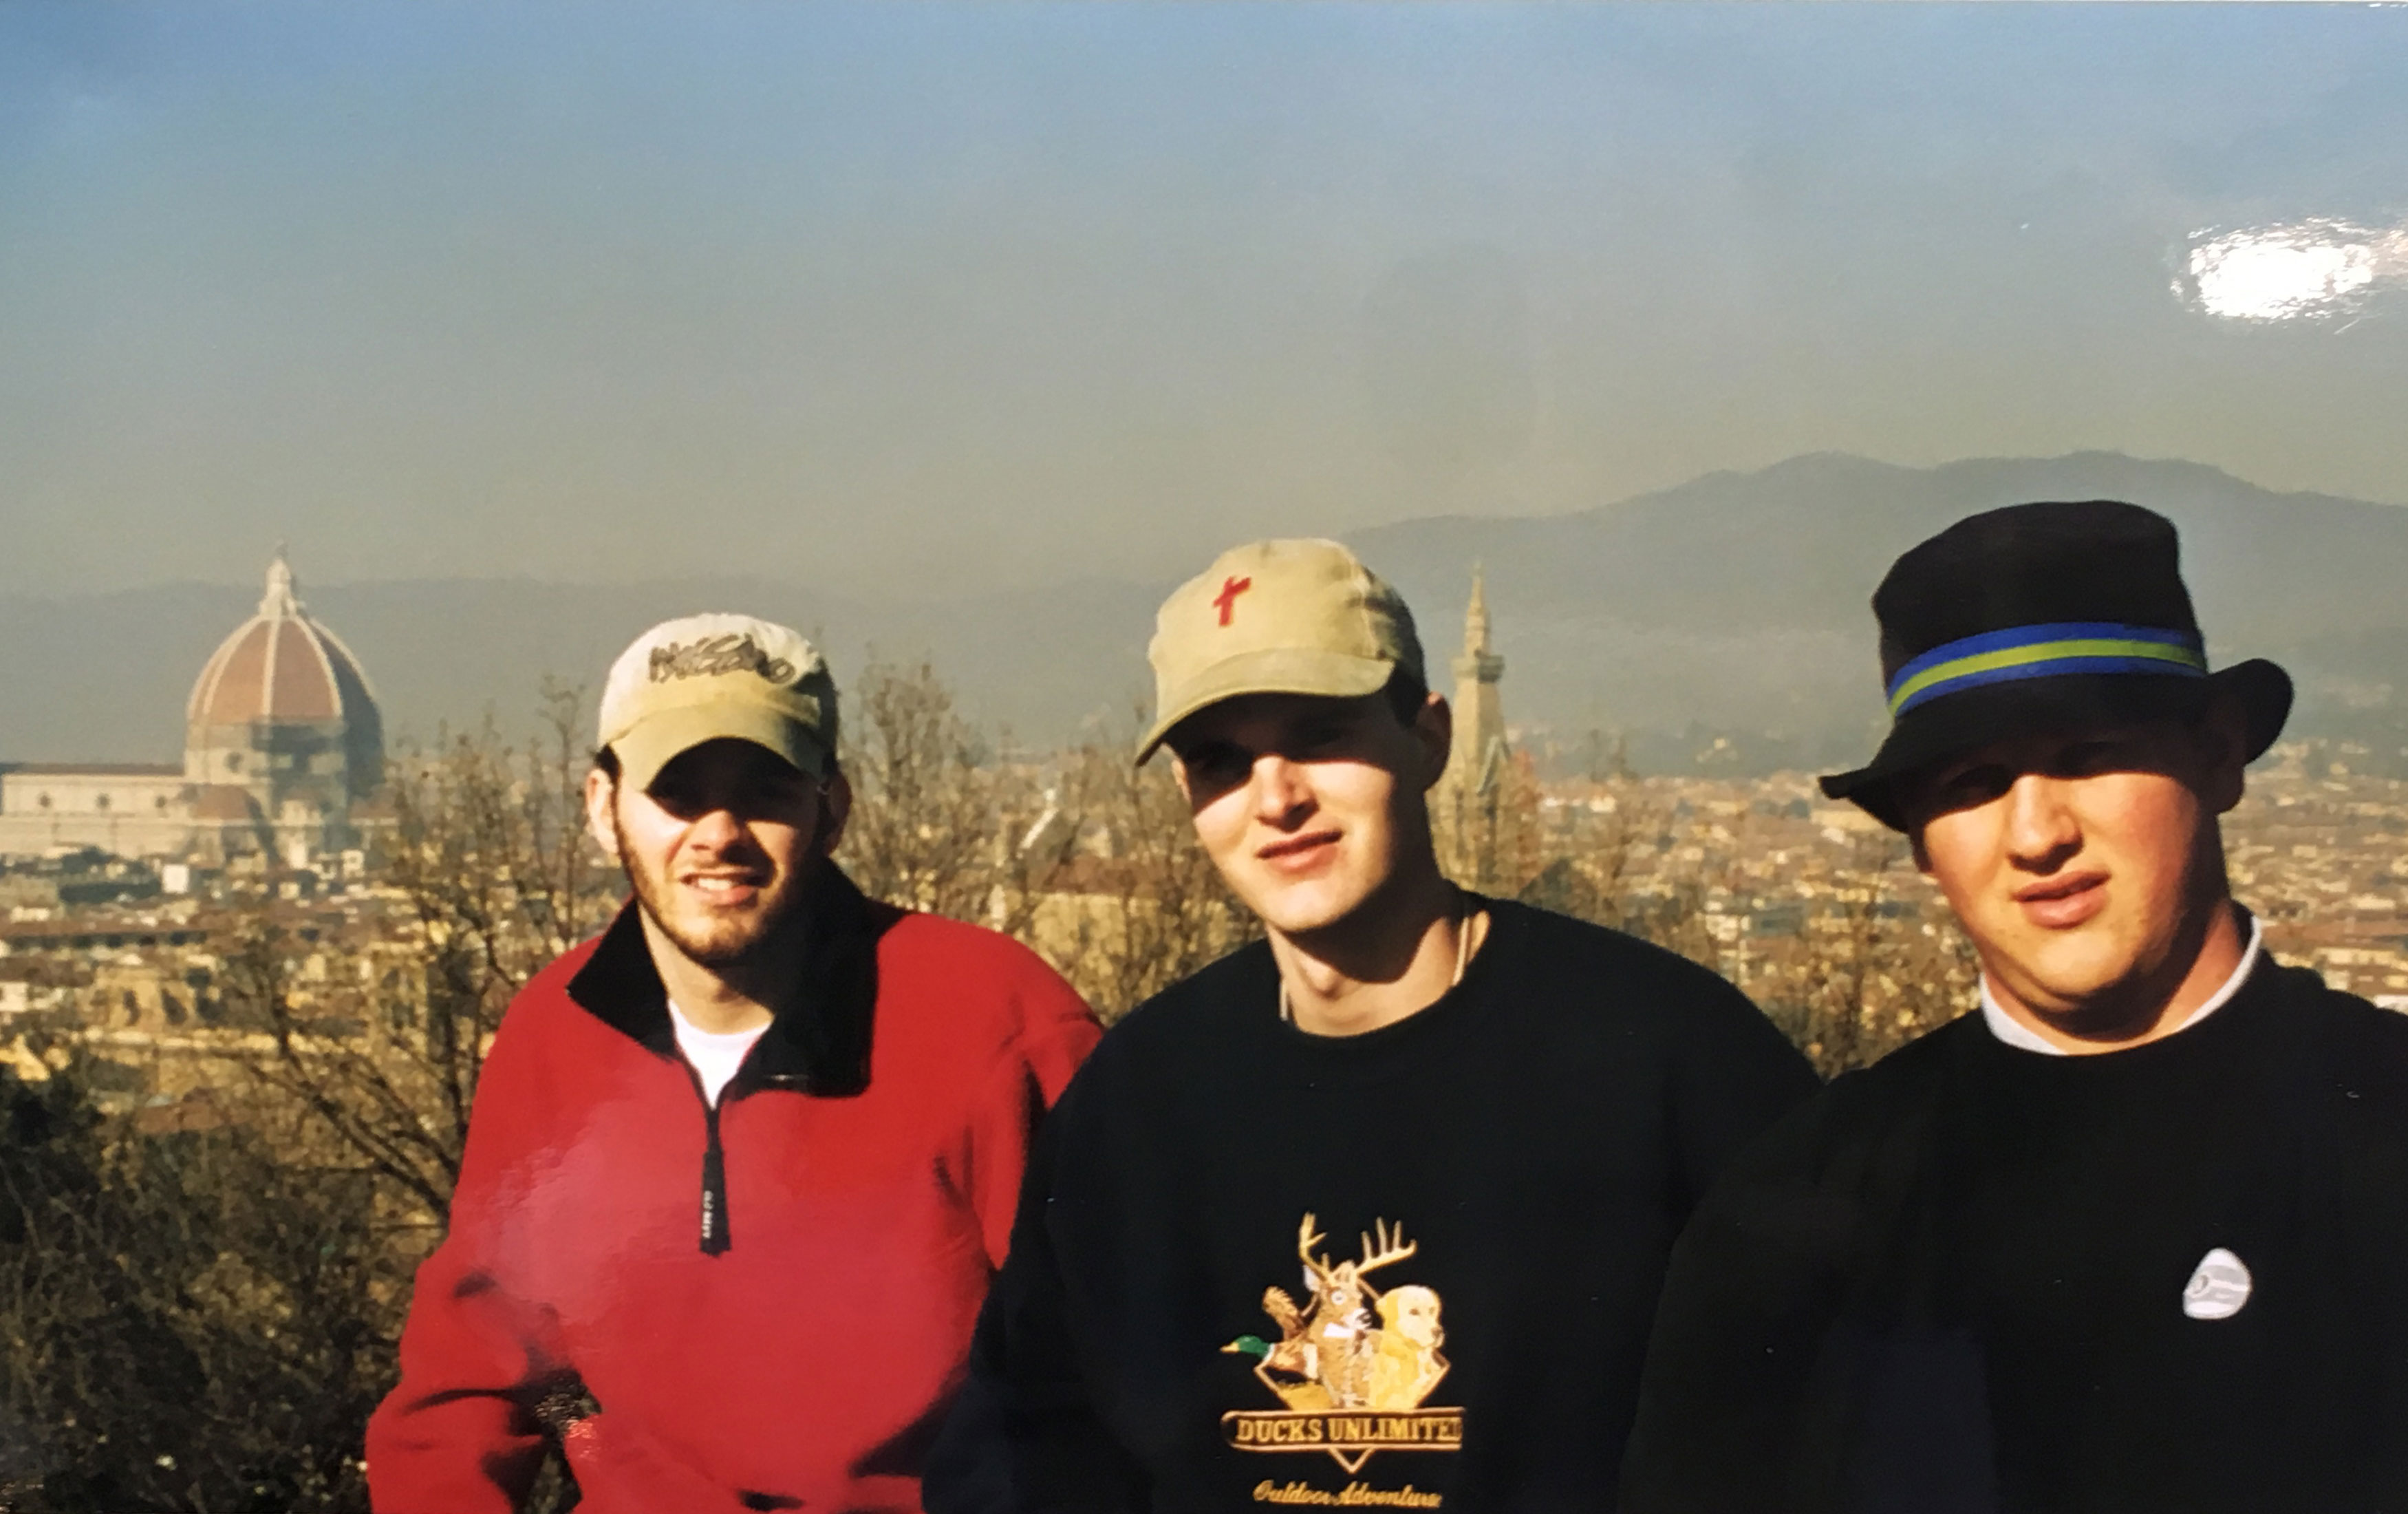 First Time at Piazza Michelangelo on the outskirts of Florence. L-R: Me, Patrick, Chris. Behind us you can see the famous Duomo, Cattedrale di Santa Maria del Fiore.